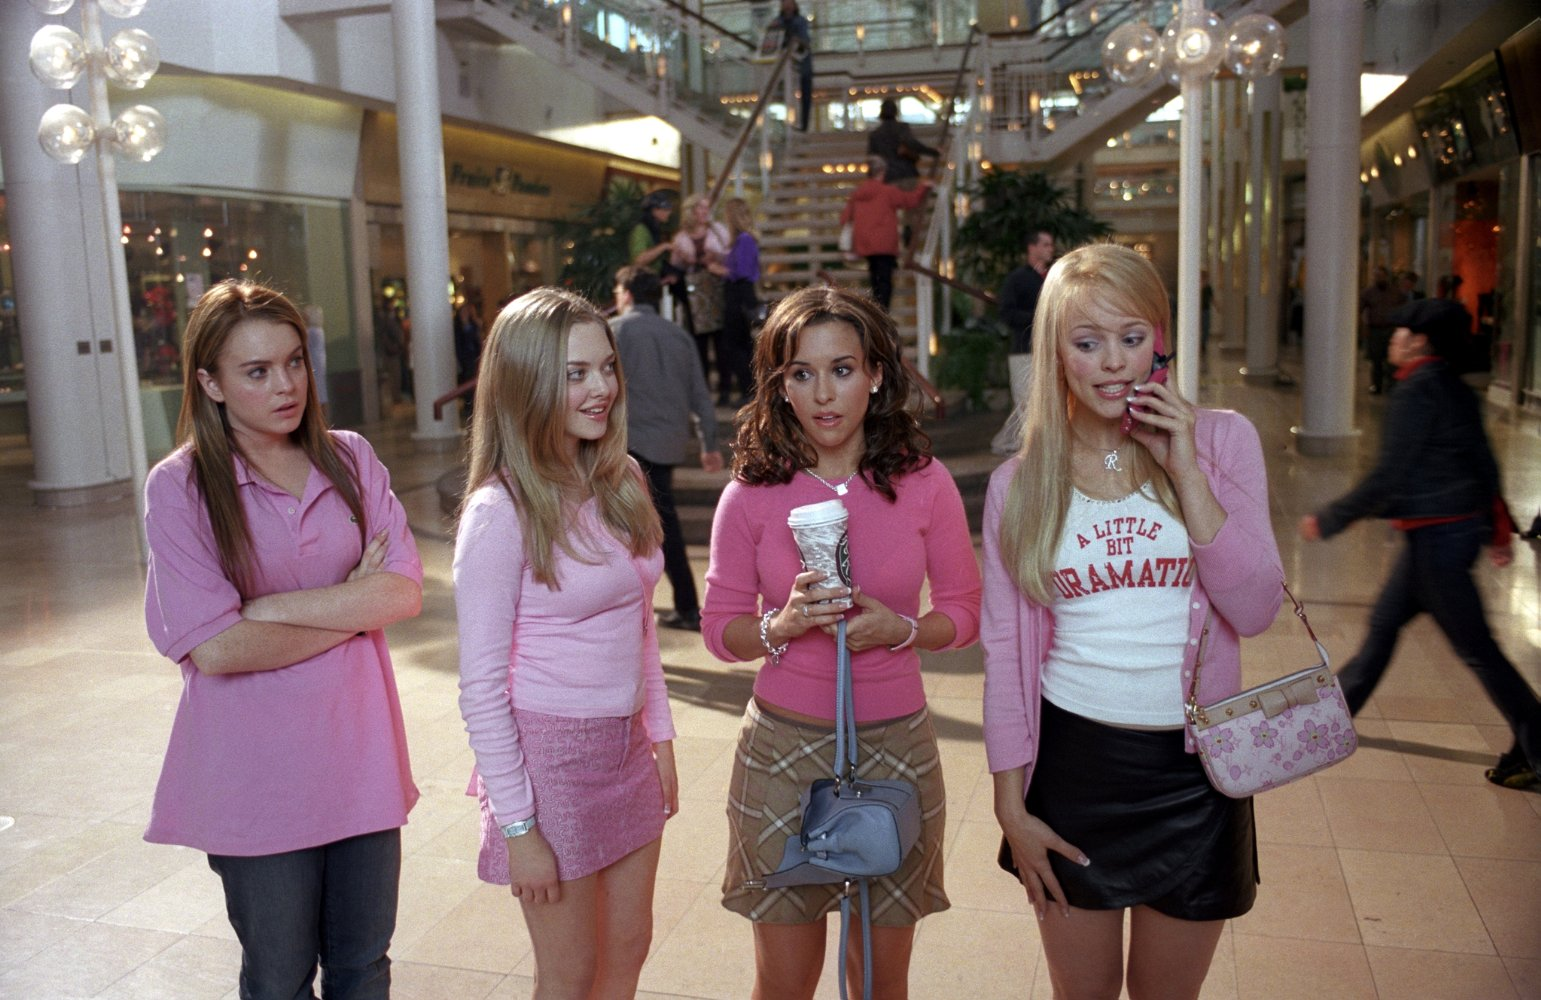 You can watch Mean Girls with Lindsay Lohan tomorrow night in Toronto